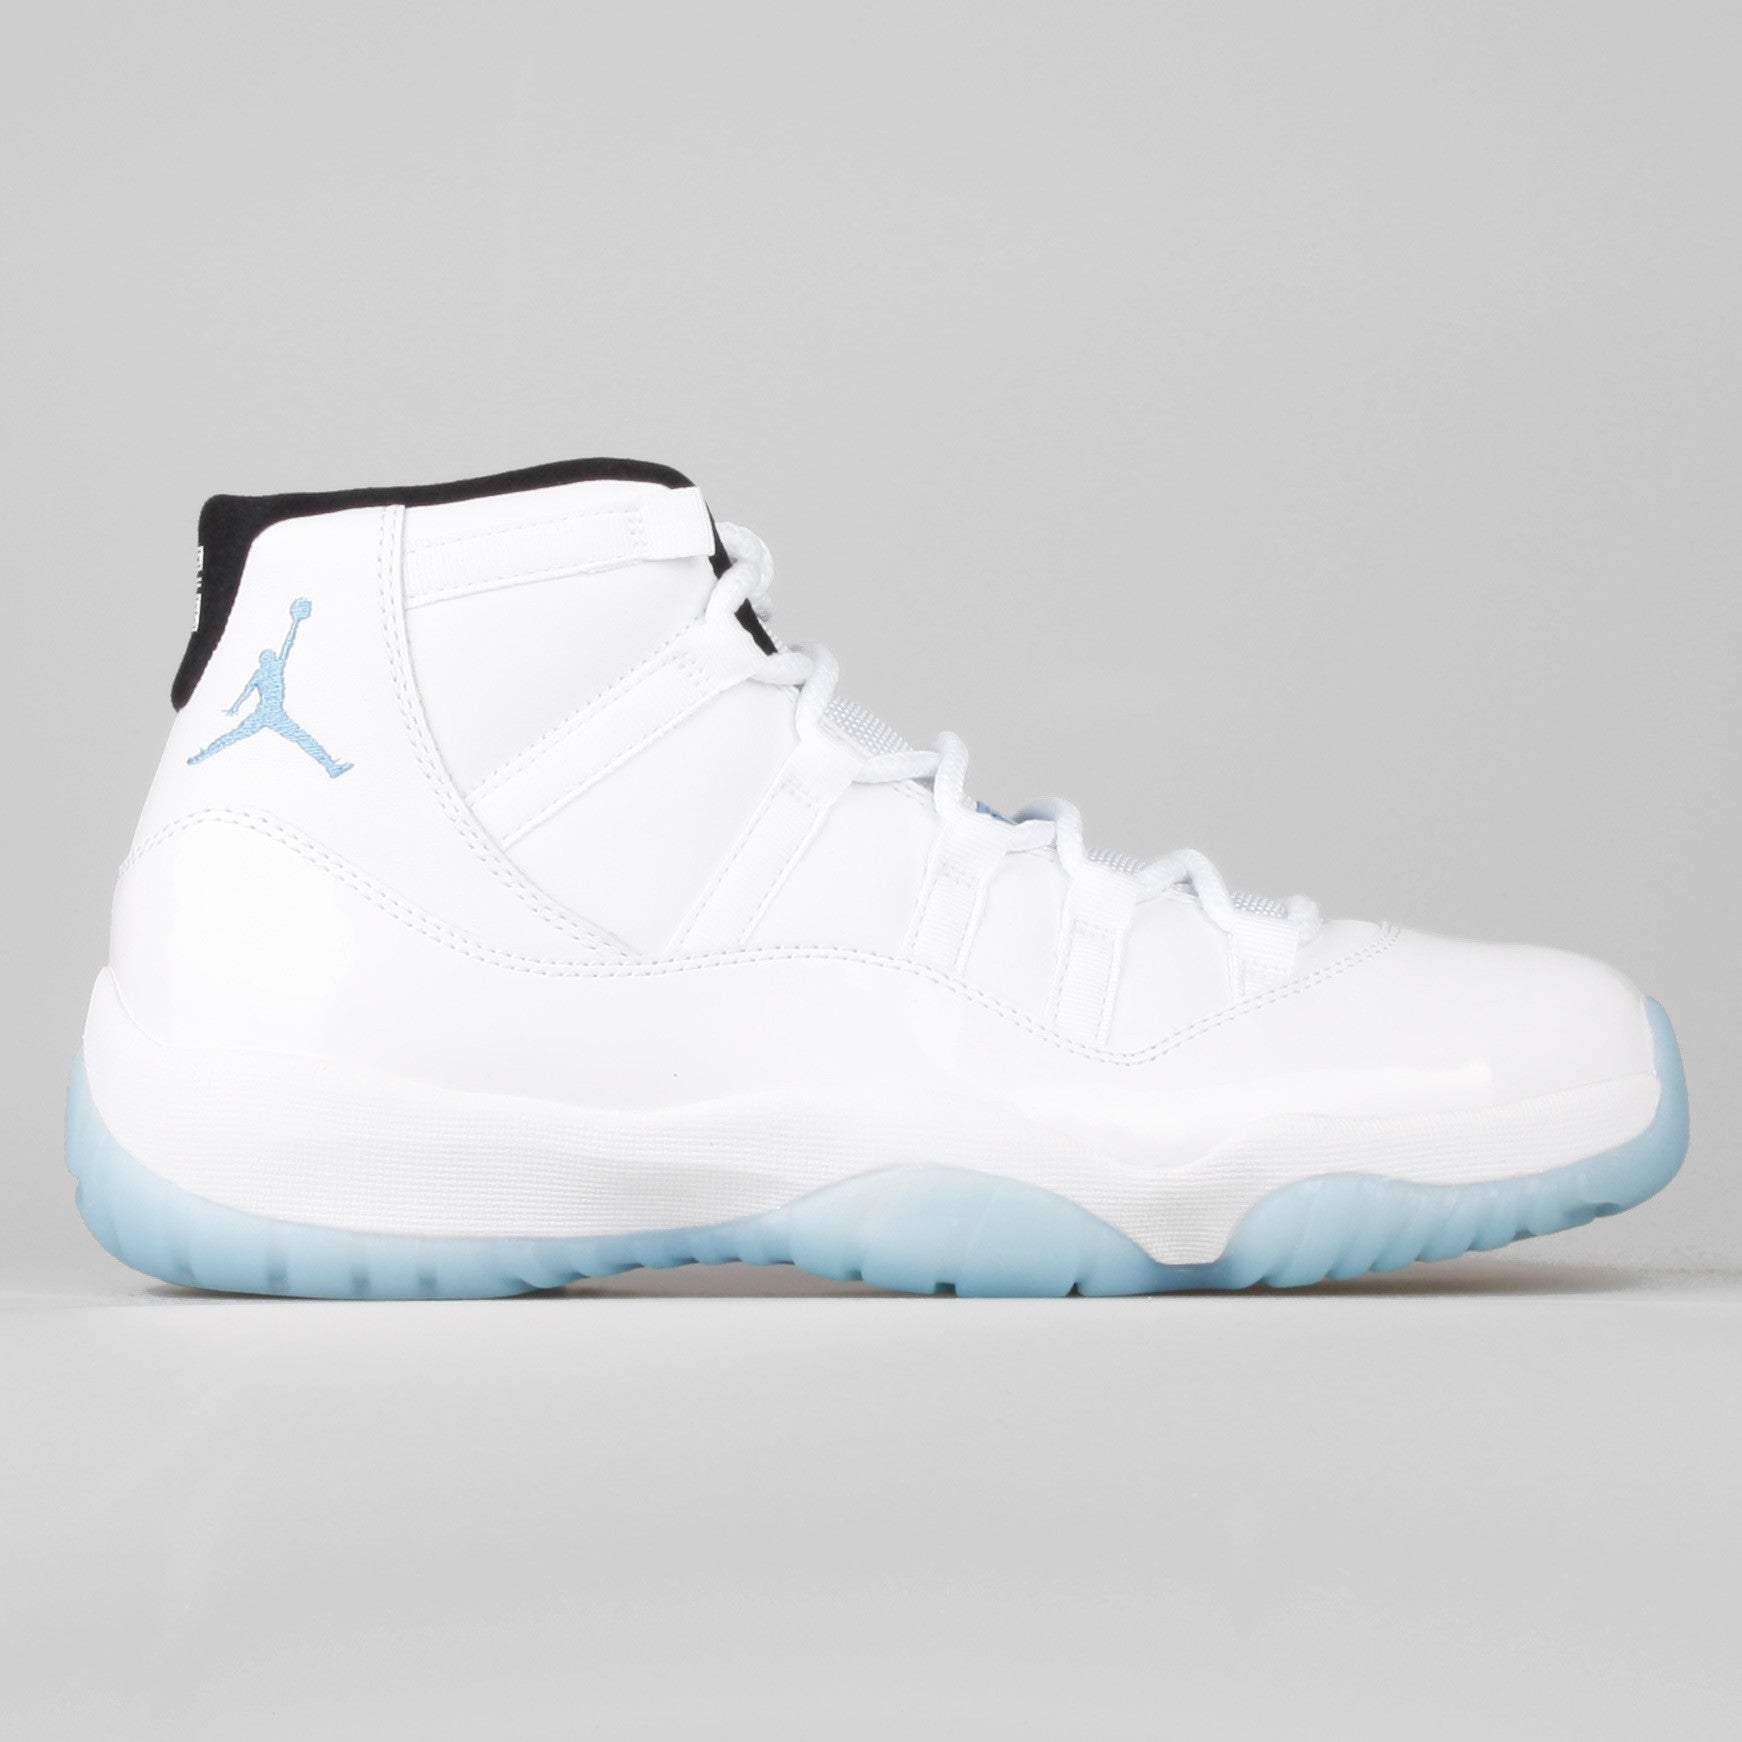 new product 26760 85d62 Nike Air Jordan 11 Retro Columbia Legend Blue (378037-117) ...